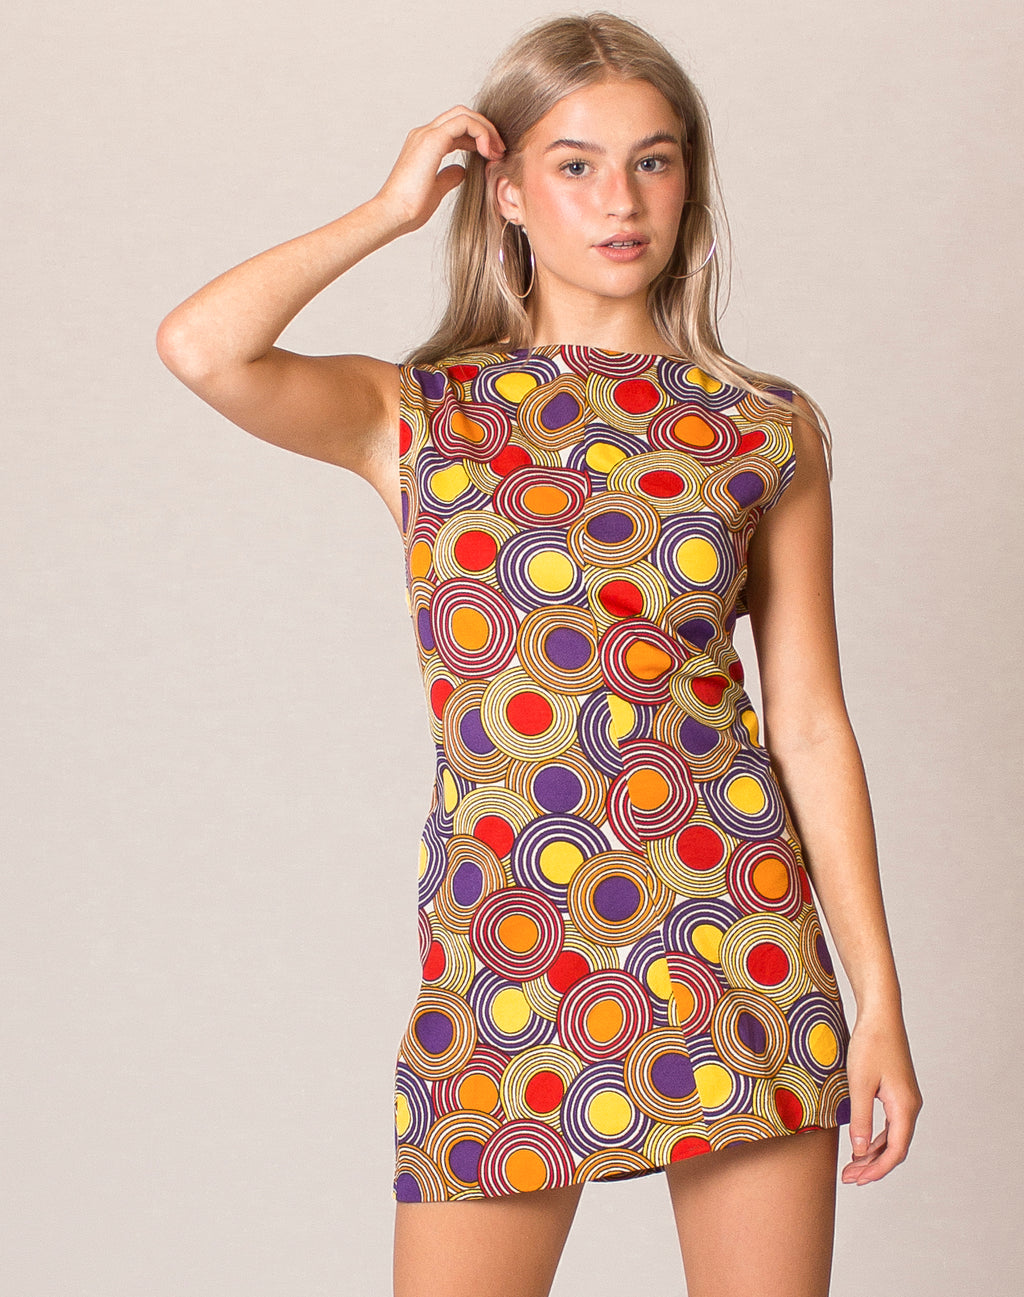 60s GRAPHIC MINI DRESS